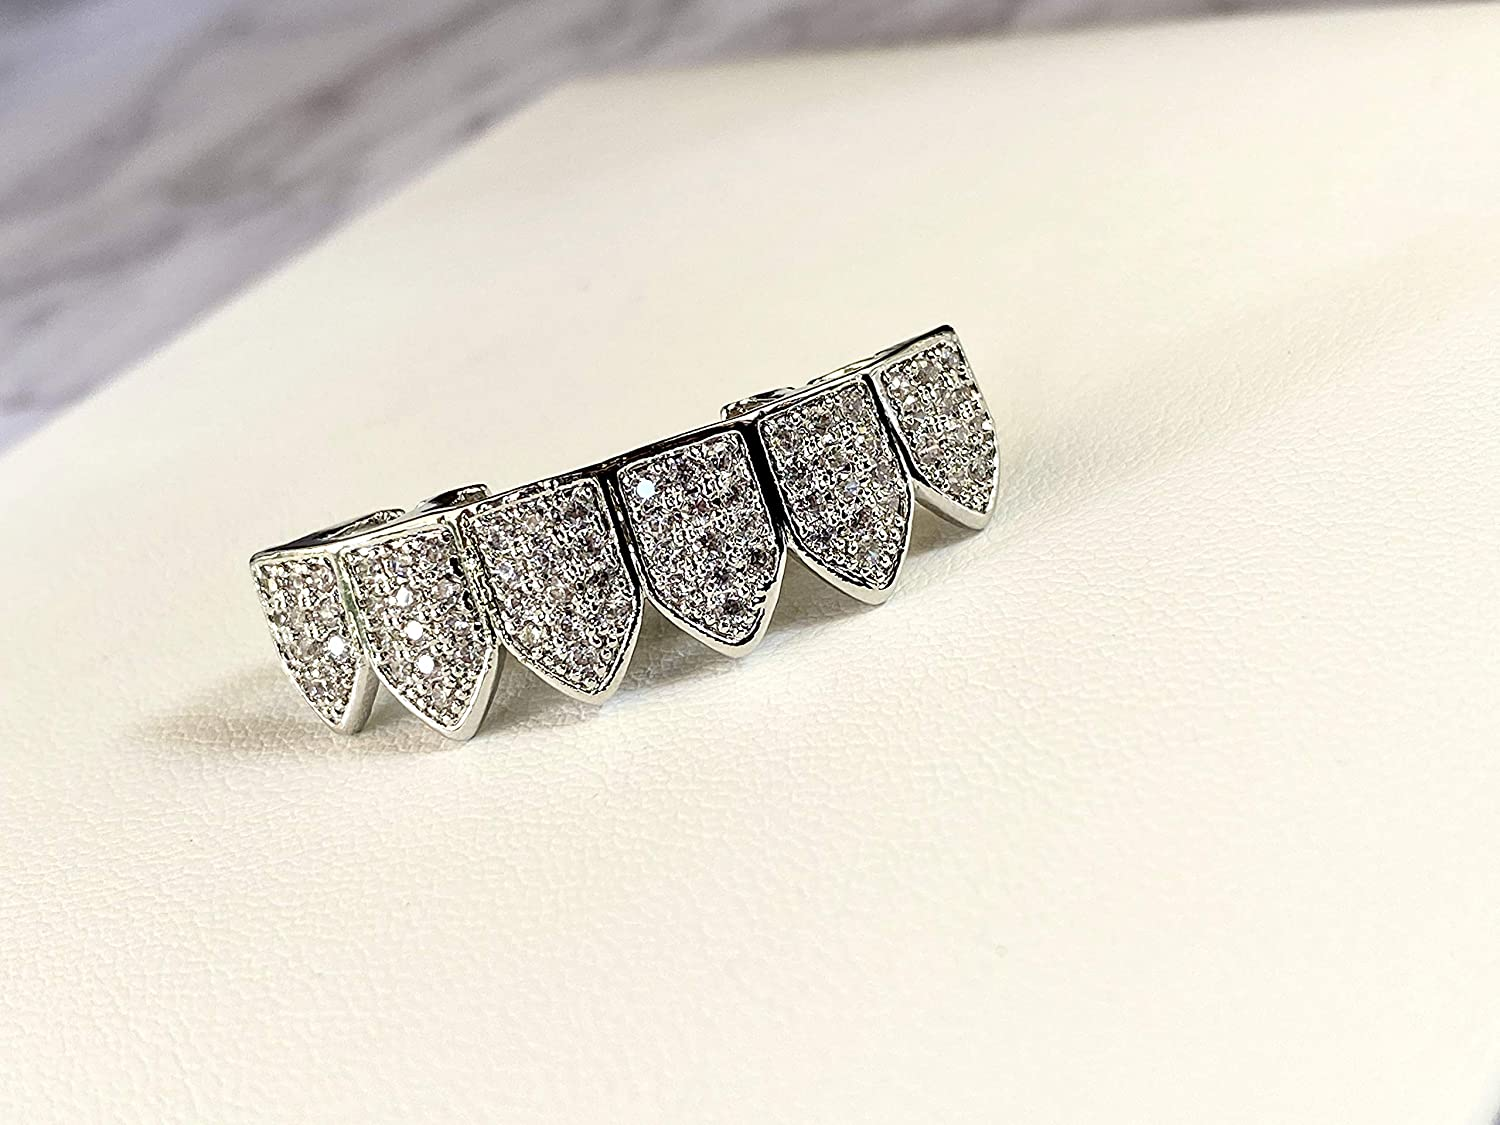 18K White Gold Plated CZ Cluster Custom Slugs Top Bottom Grillz Mouth Teeth Grills Set - Grillz, Teeth Cap, Iced Out Grillz